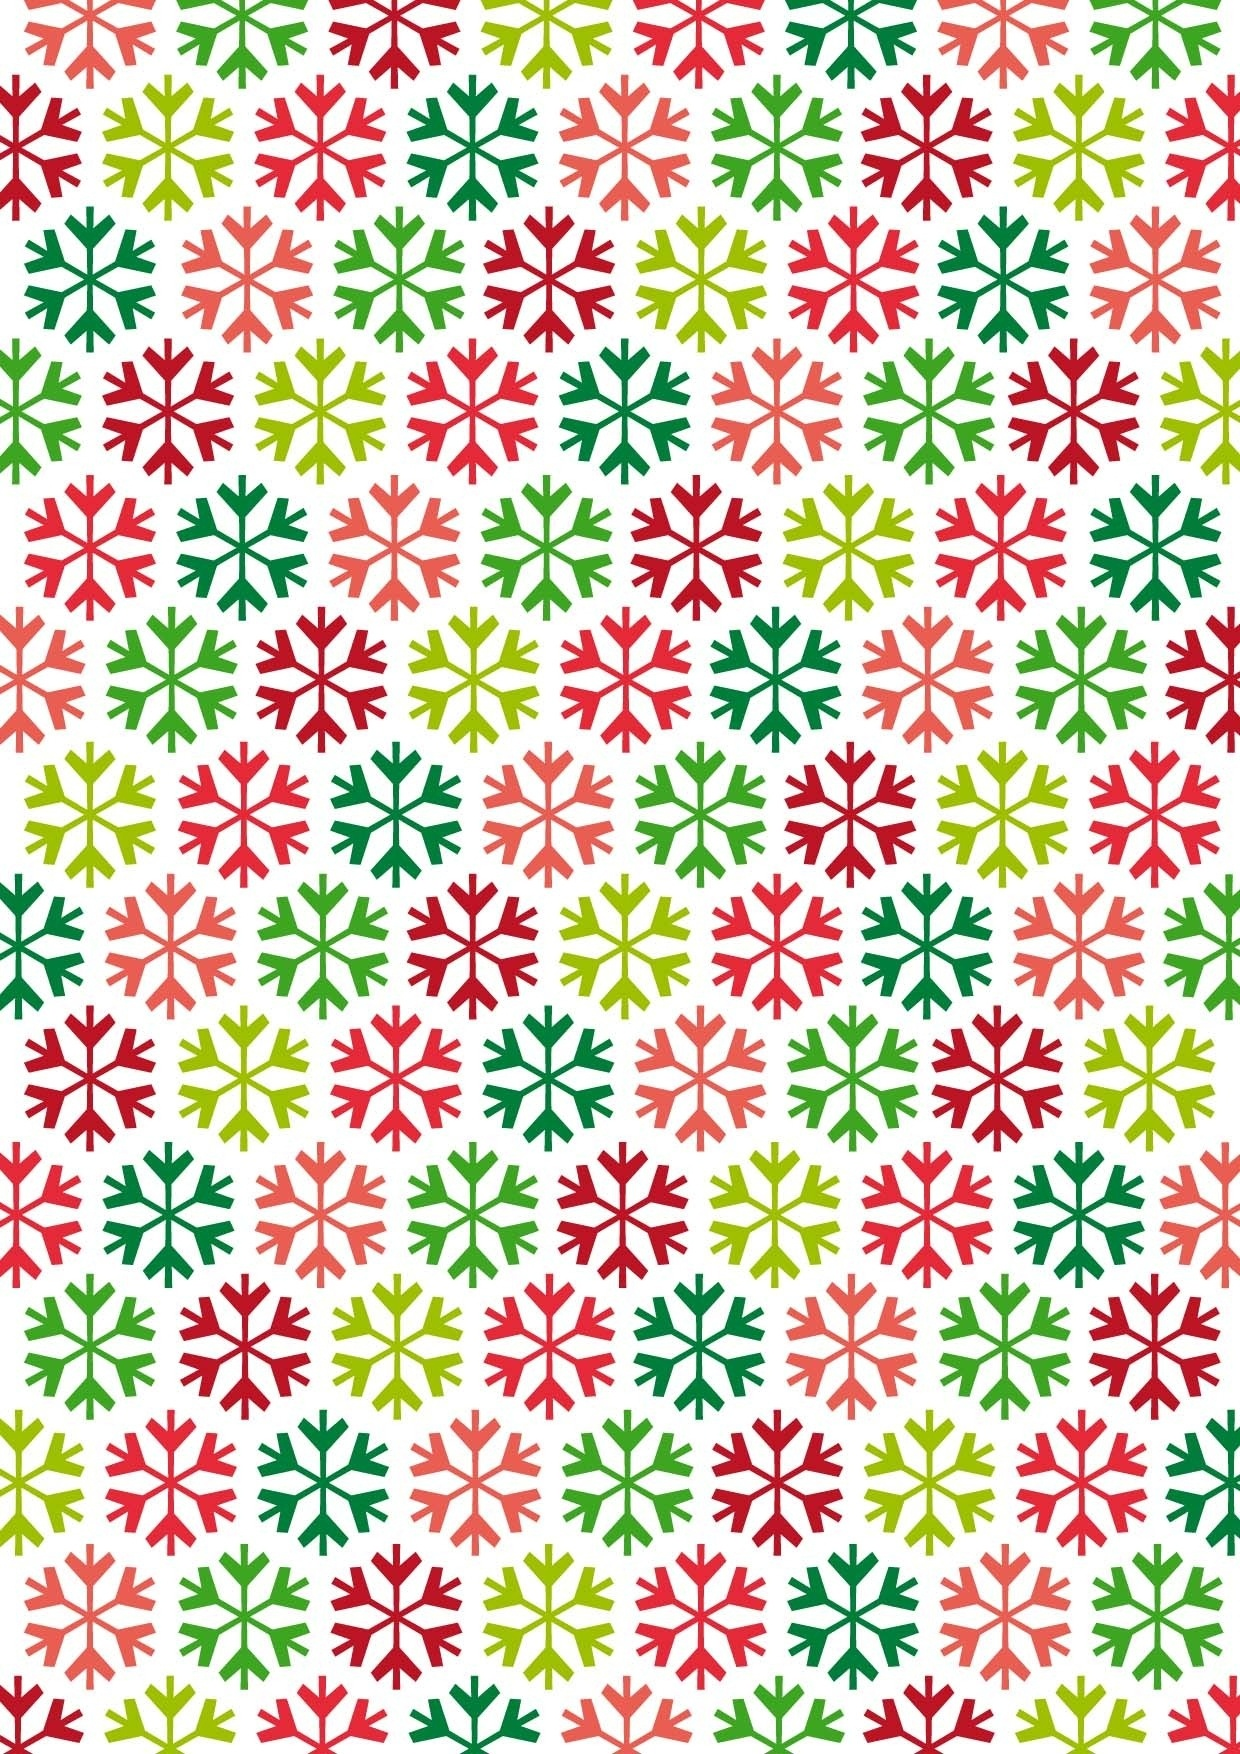 Free Printable Christmas Paper (90+ Images In Collection) Page 1 - Free Printable Santa Paper